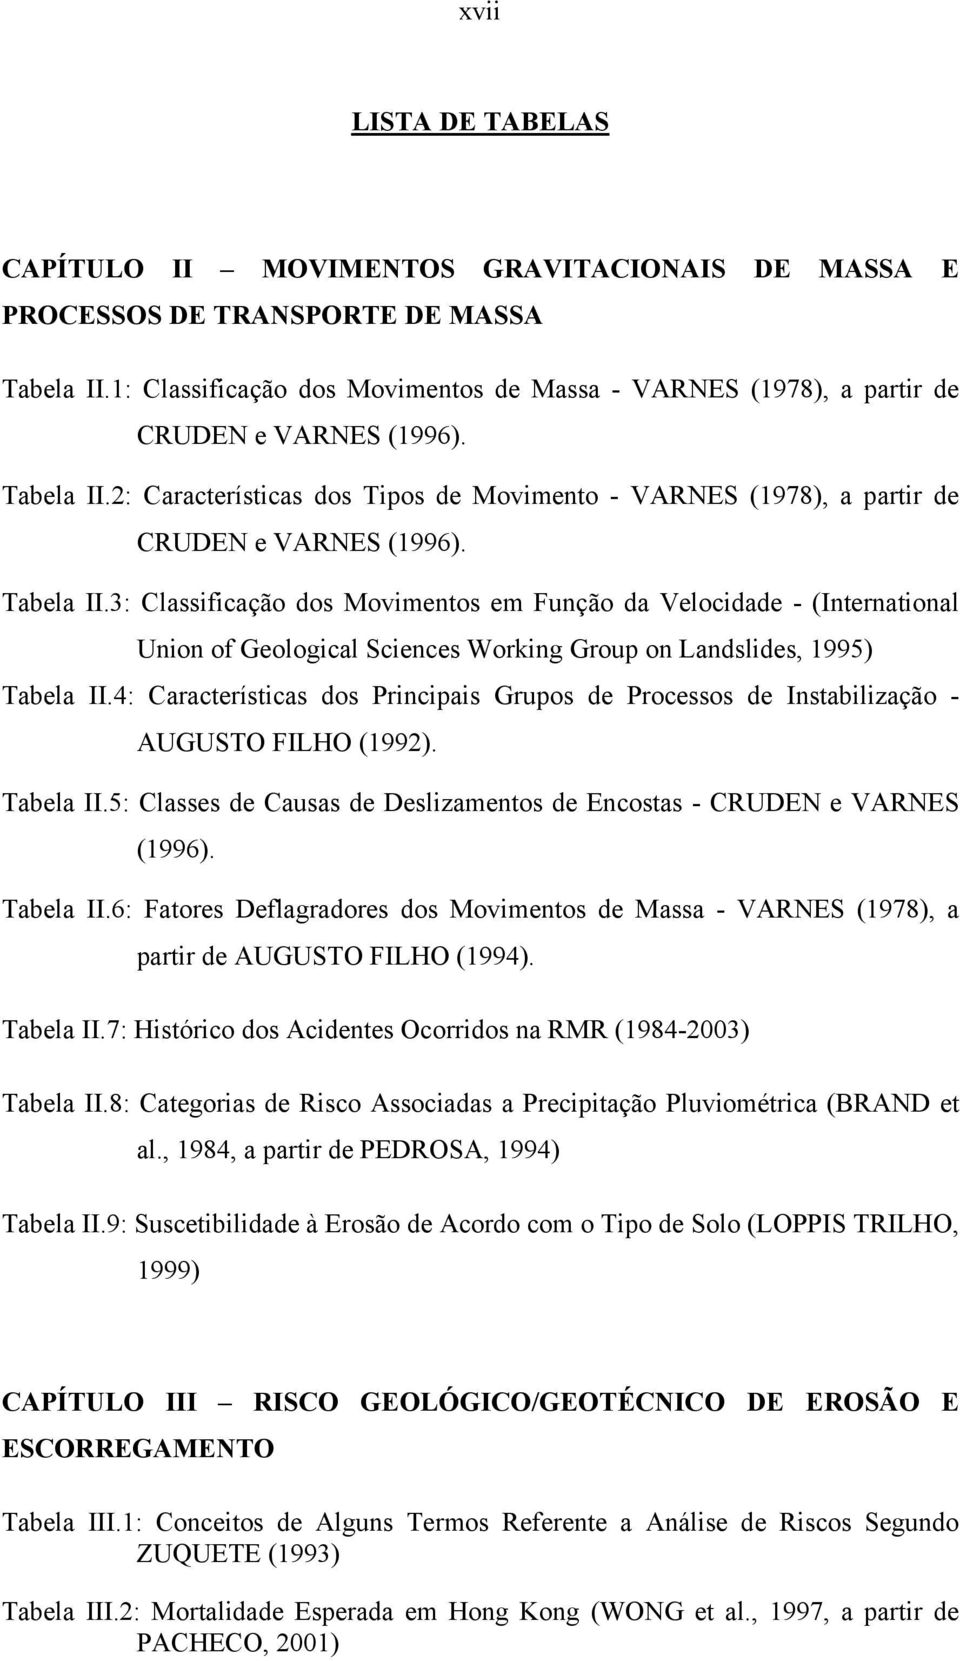 Tabela II.3: Classificação dos Movimentos em Função da Velocidade - (International Union of Geological Sciences Working Group on Landslides, 1995) Tabela II.